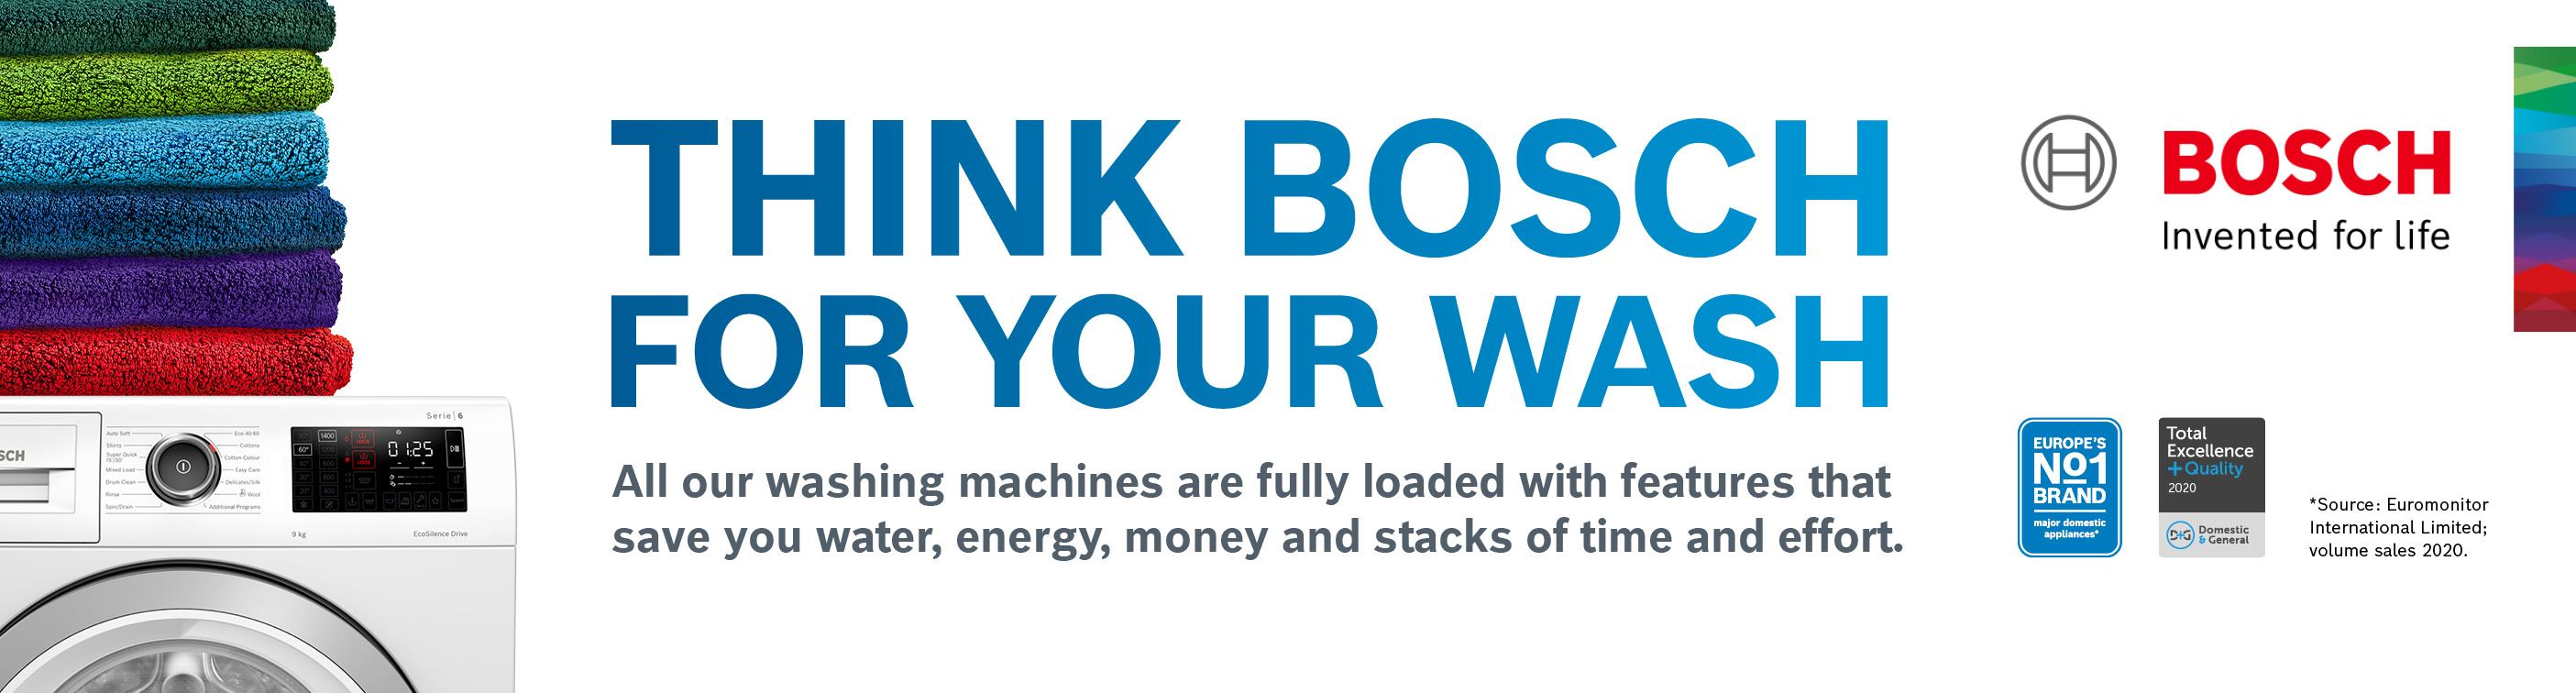 Bosch Think Bosch for Your Wash Banner Homepage Aug 20221